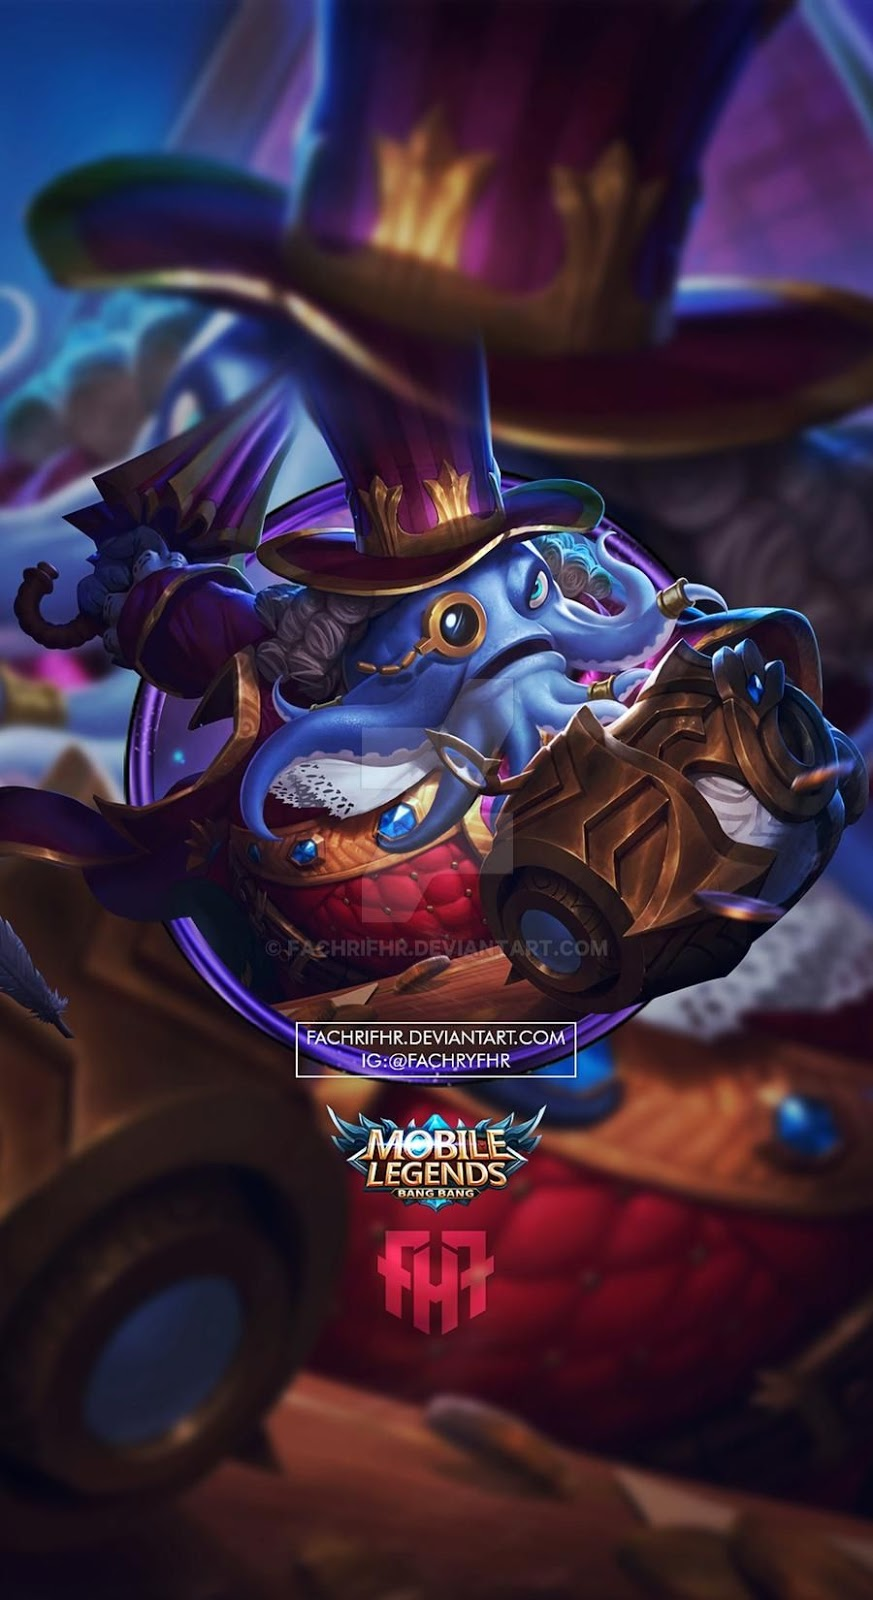 Wallpaper Bane Count Dracula Mobile Legends Full HD for Android and iOS